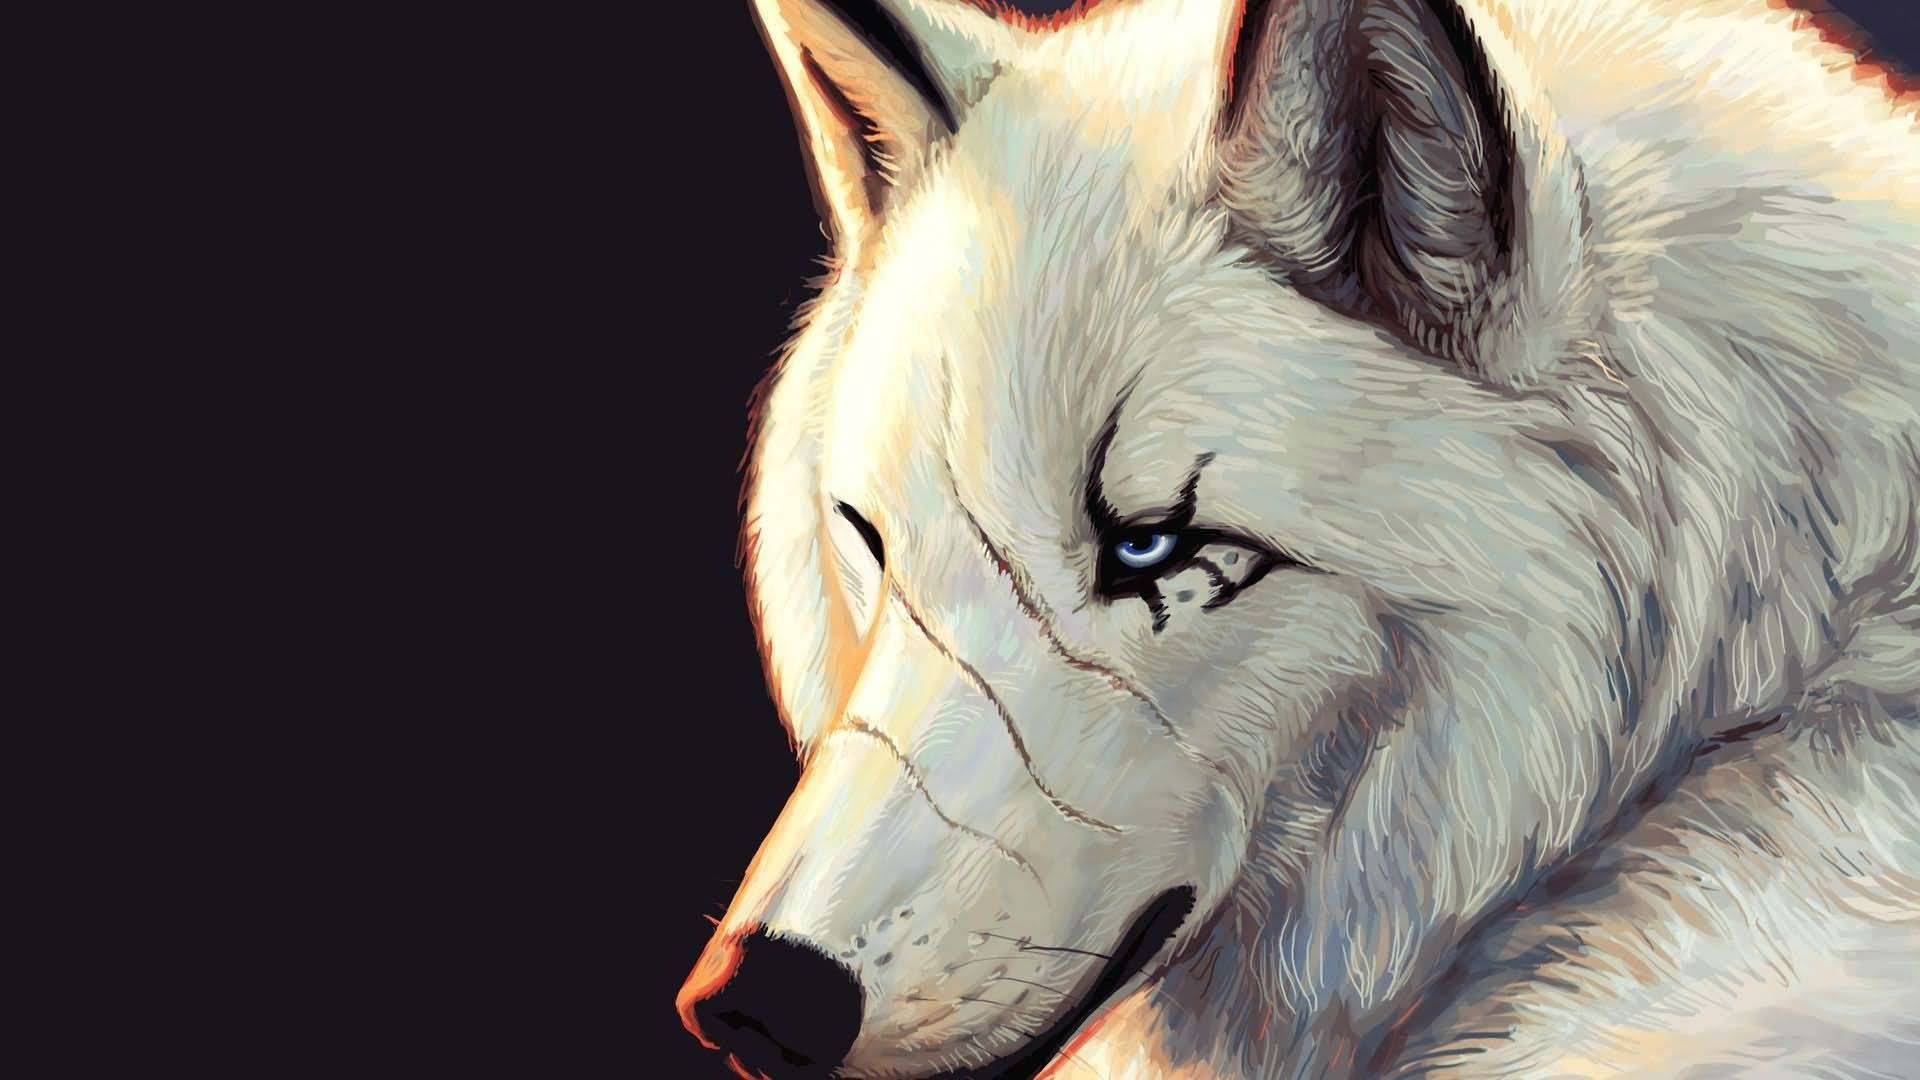 White Wolf Wallpaper Phone Is Cool Wallpapers Cool Wolf Wallpapers Hd 129648 Hd Wallpaper Backgrounds Download